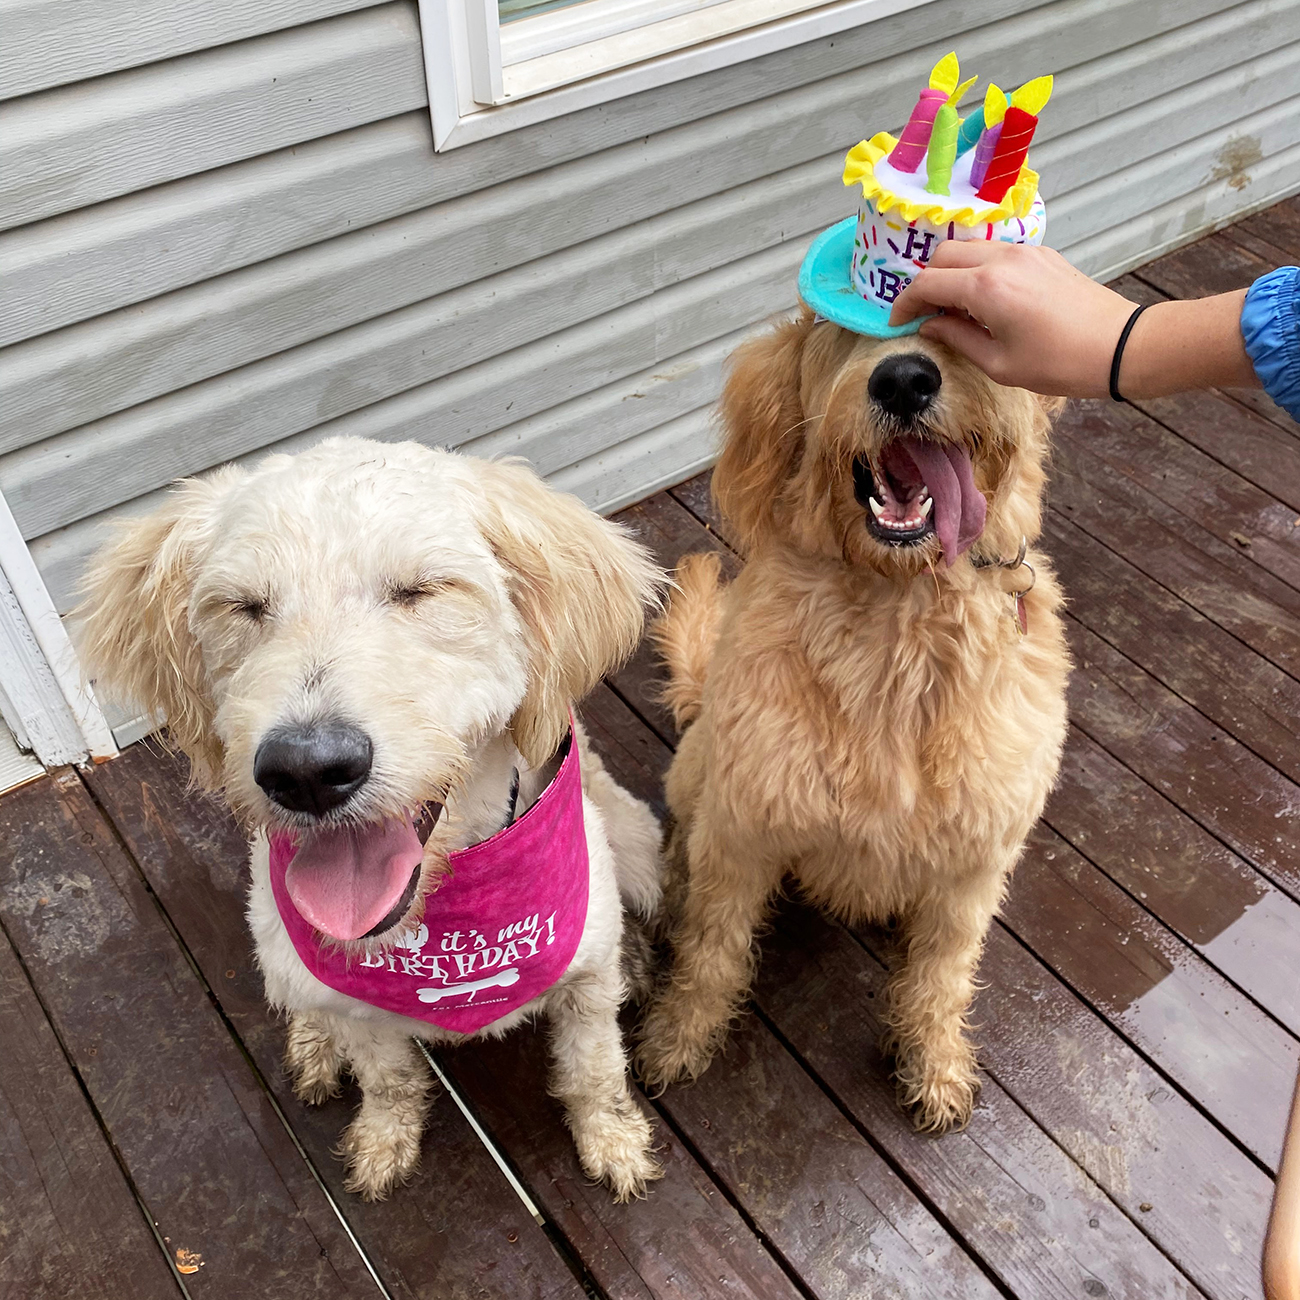 Large blond dogs wear birthday accessories while sitting on outside deck